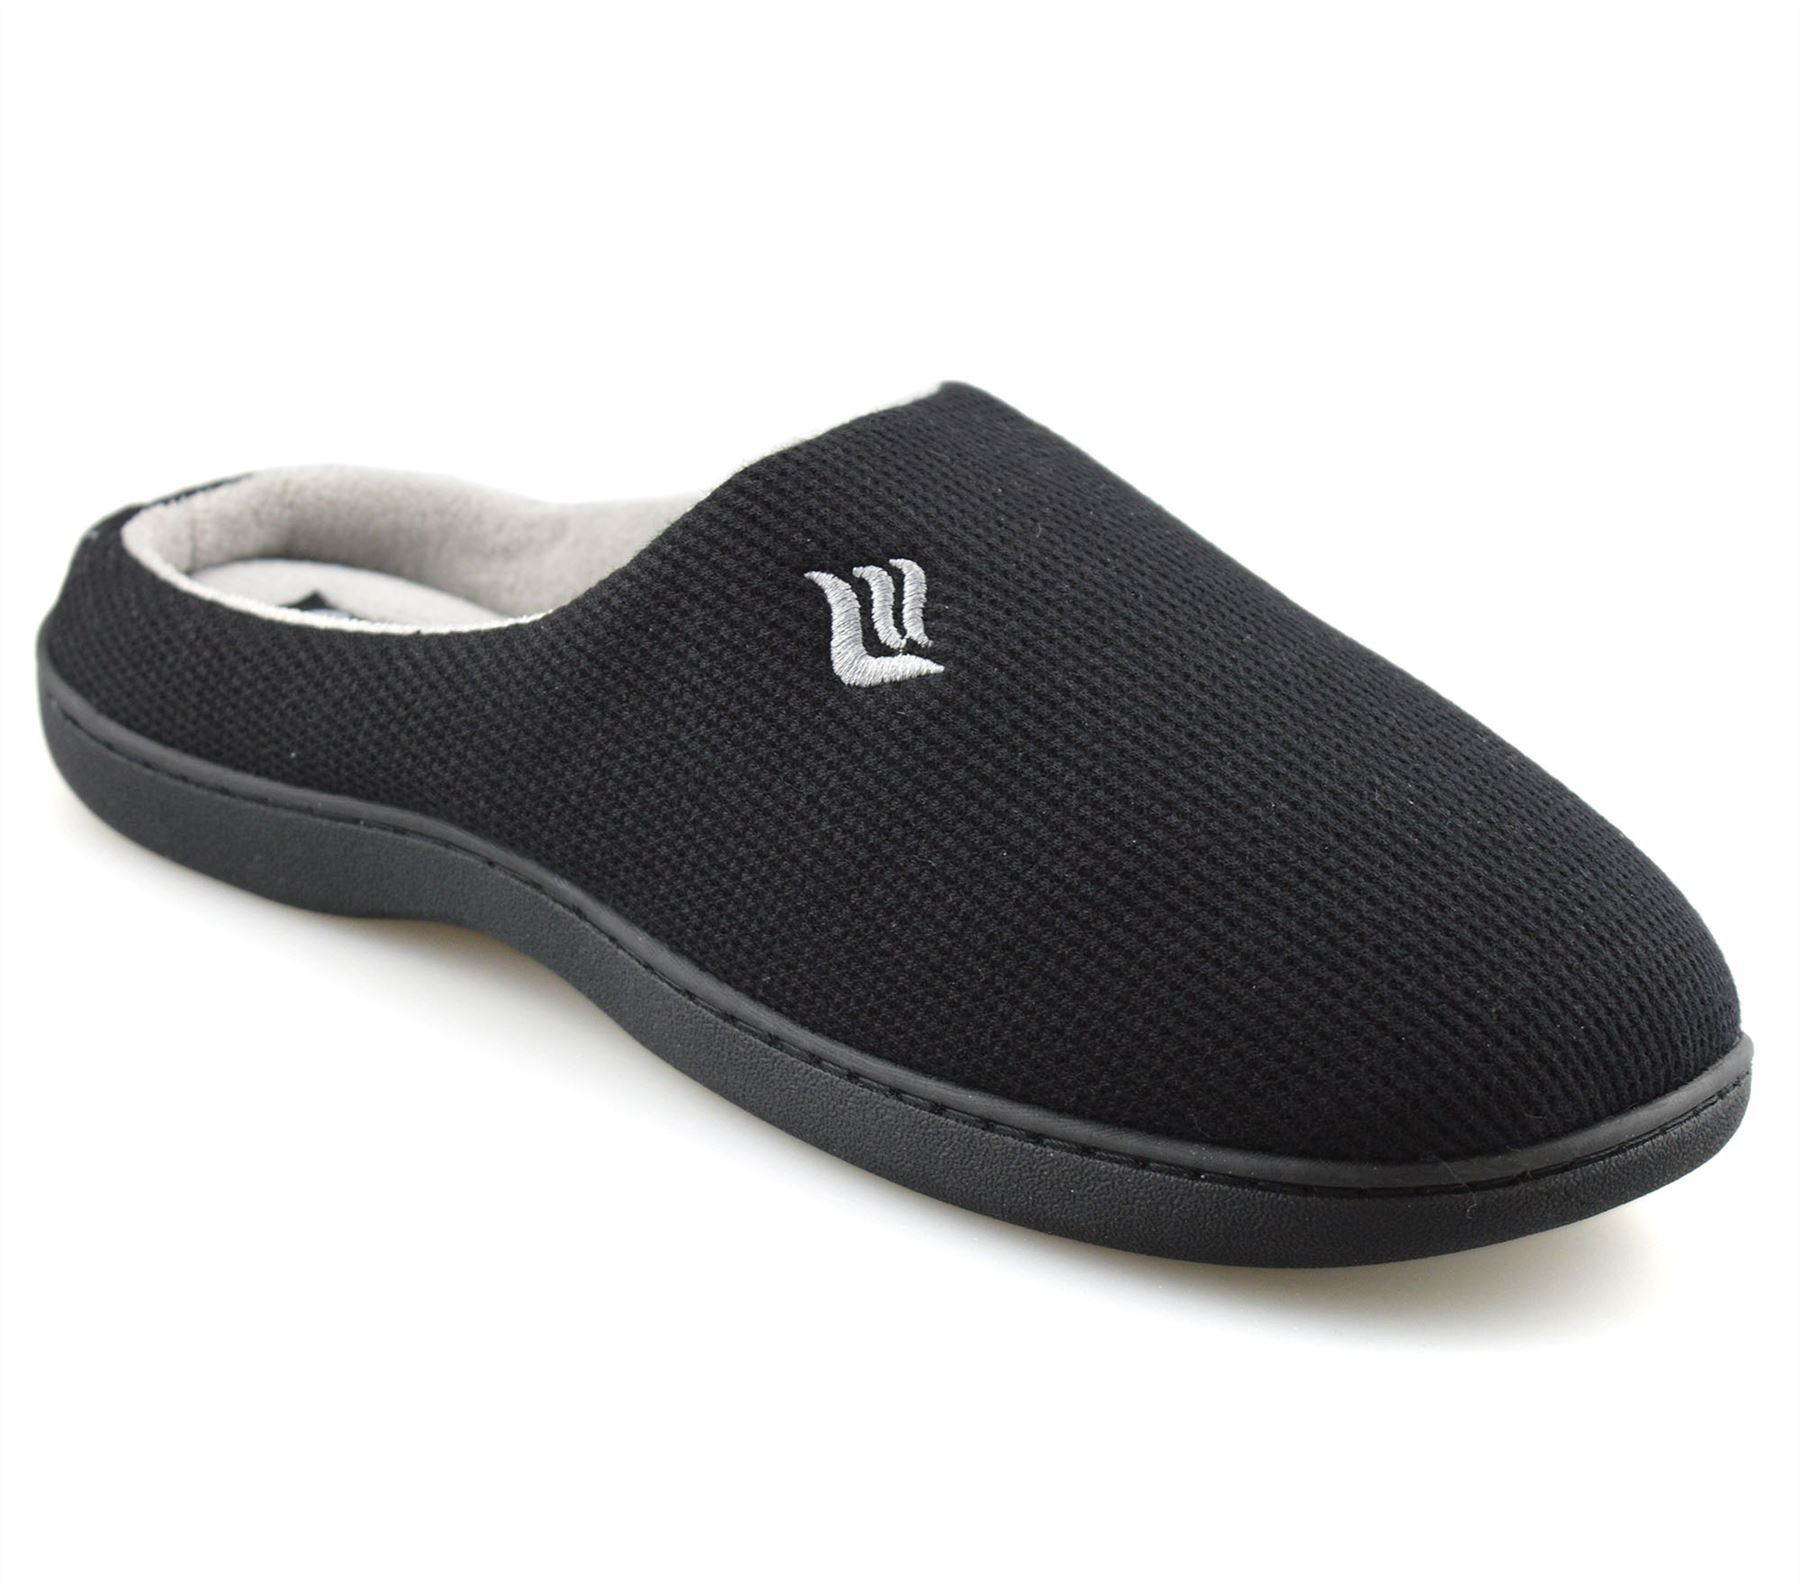 Mens-Memory-Foam-Warm-Fleece-Lined-Cotton-Slippers-Slip-On-Clog-Mules-Shoes-Size thumbnail 12